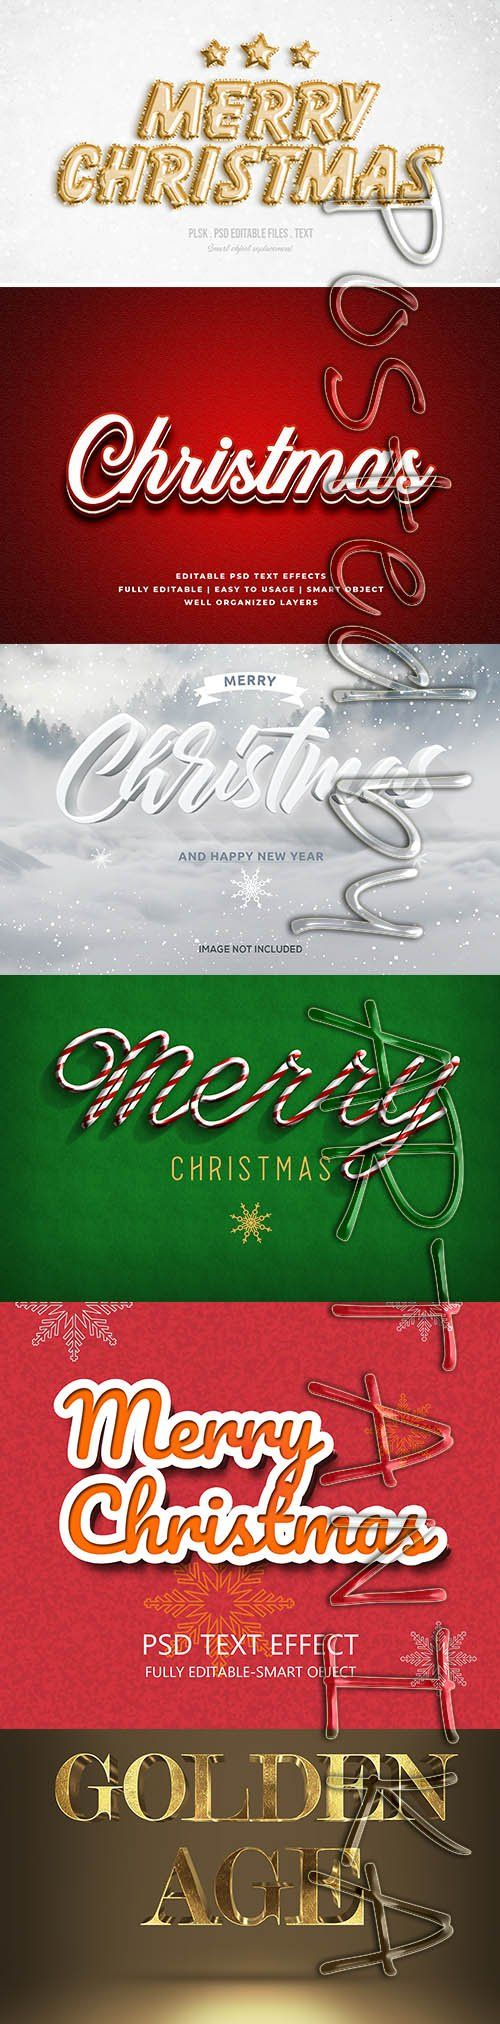 Merry Christmas Text Effect Set (With images) Merry